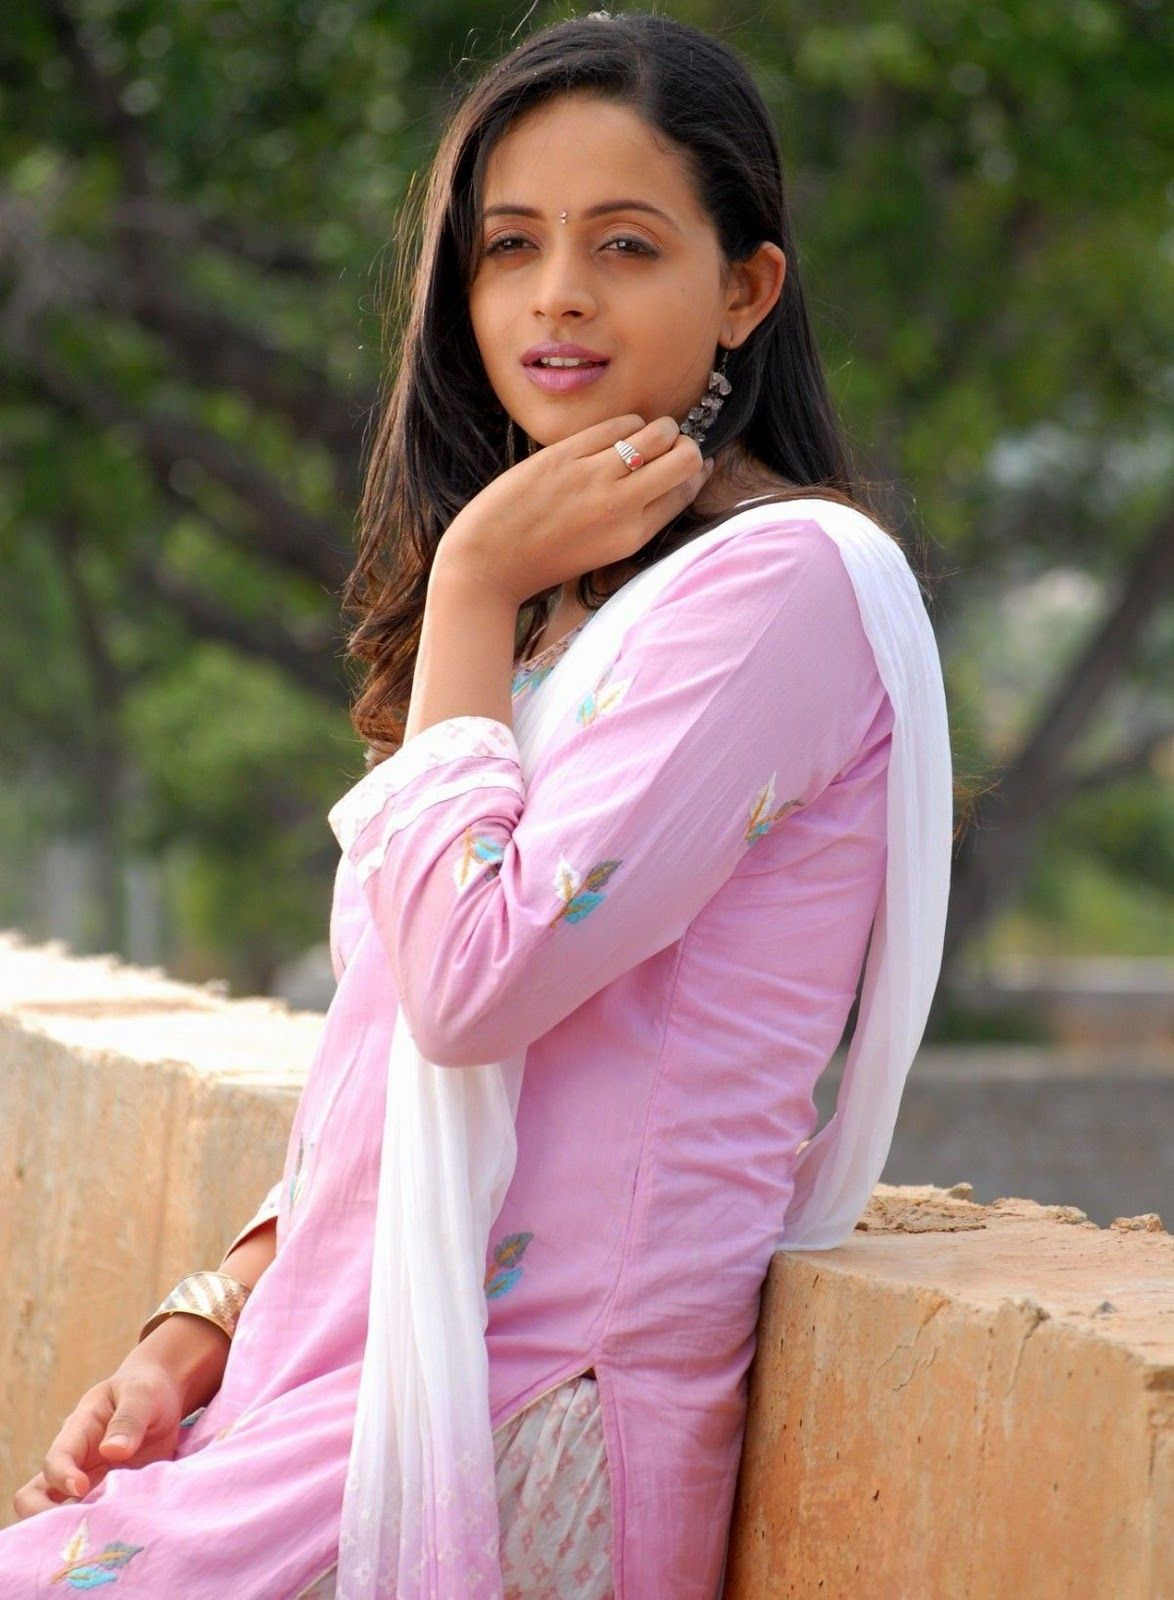 Bhavna 06 Malayalam Actress Actress Wallpaper Cool Pictures Pictures Images Bhavana Menon